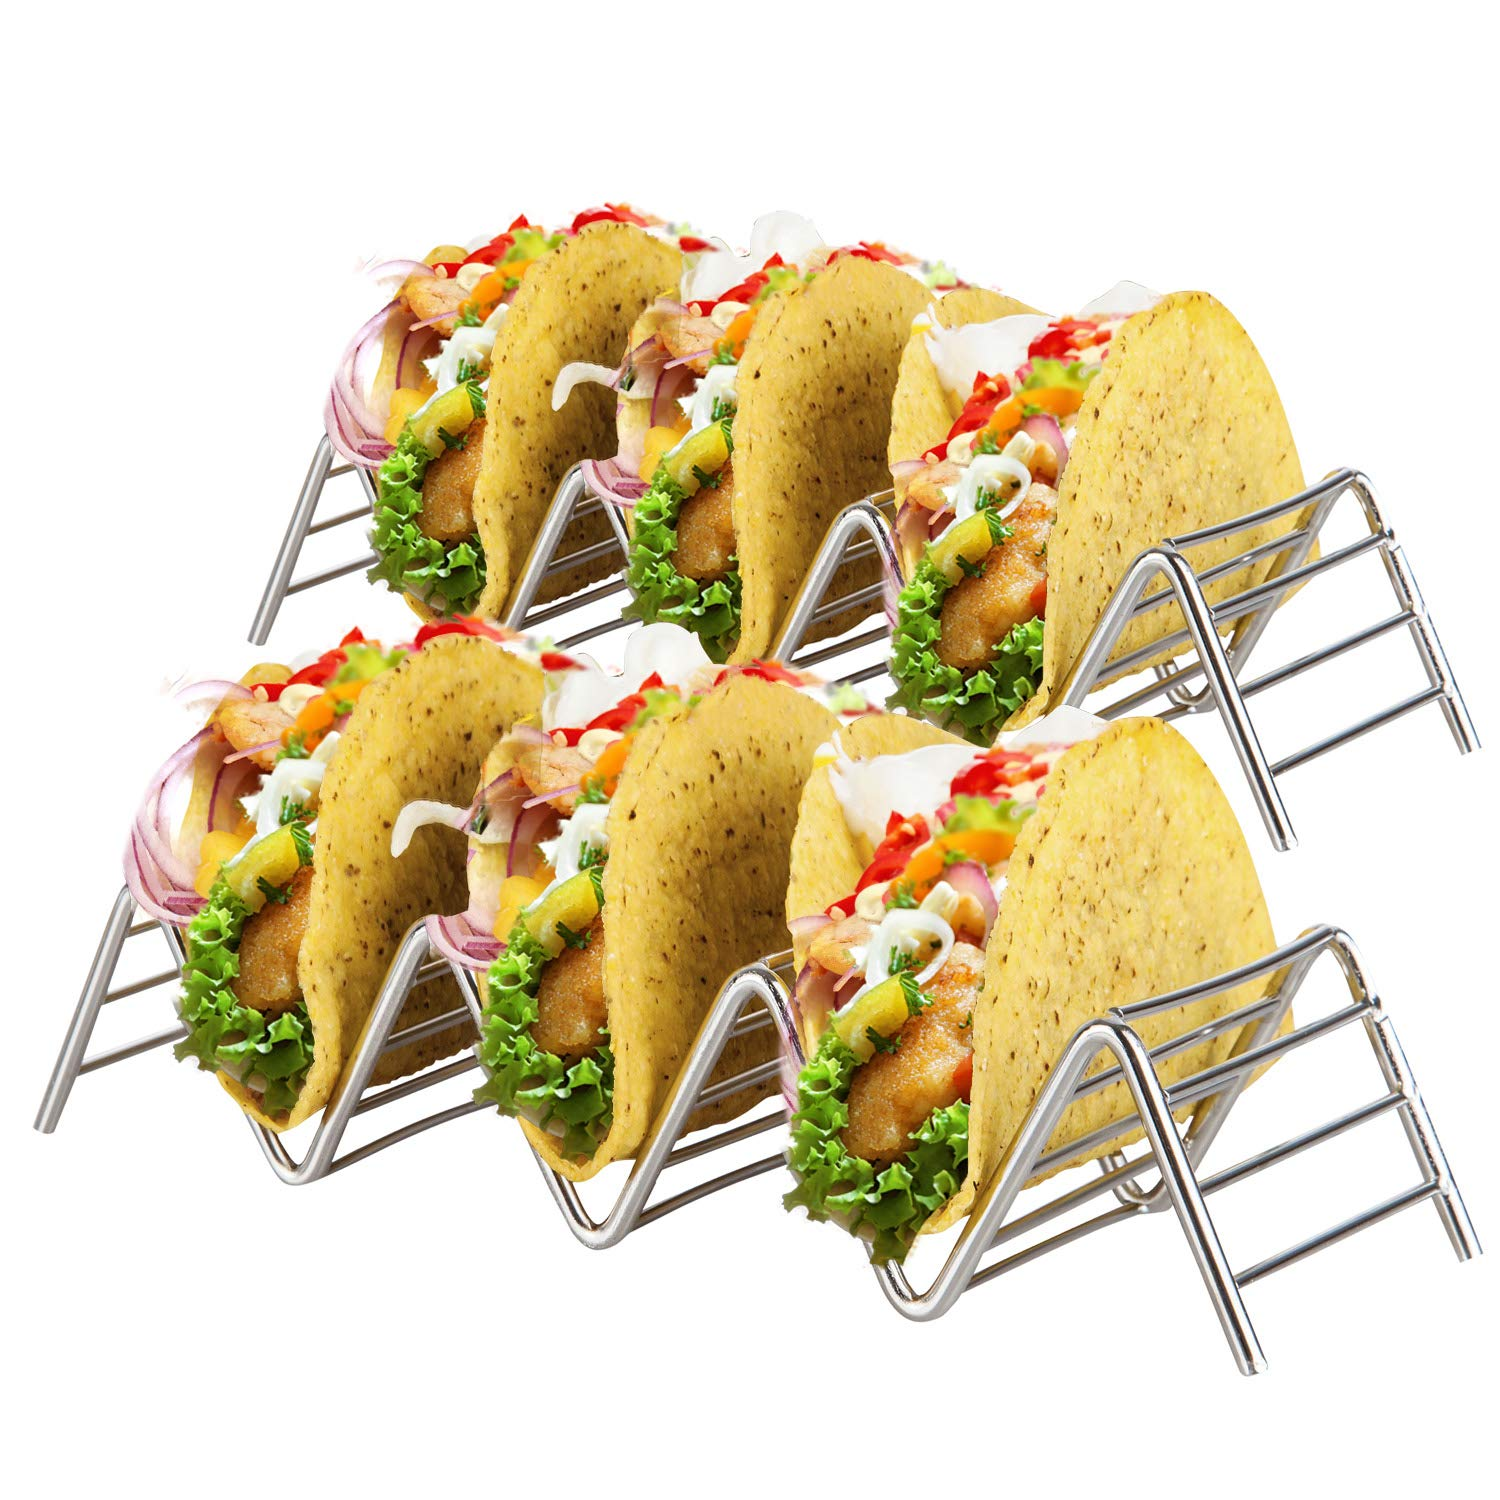 Stainless Steel Taco Holder Stand: 2 Wire Metal Tray Holders For Serving Up Soft & Hard Shell Food Truck Style Tacos - Wider, Fun Grill, Oven & Dishwasher Safe Taco Trays Great for Kids or Parties